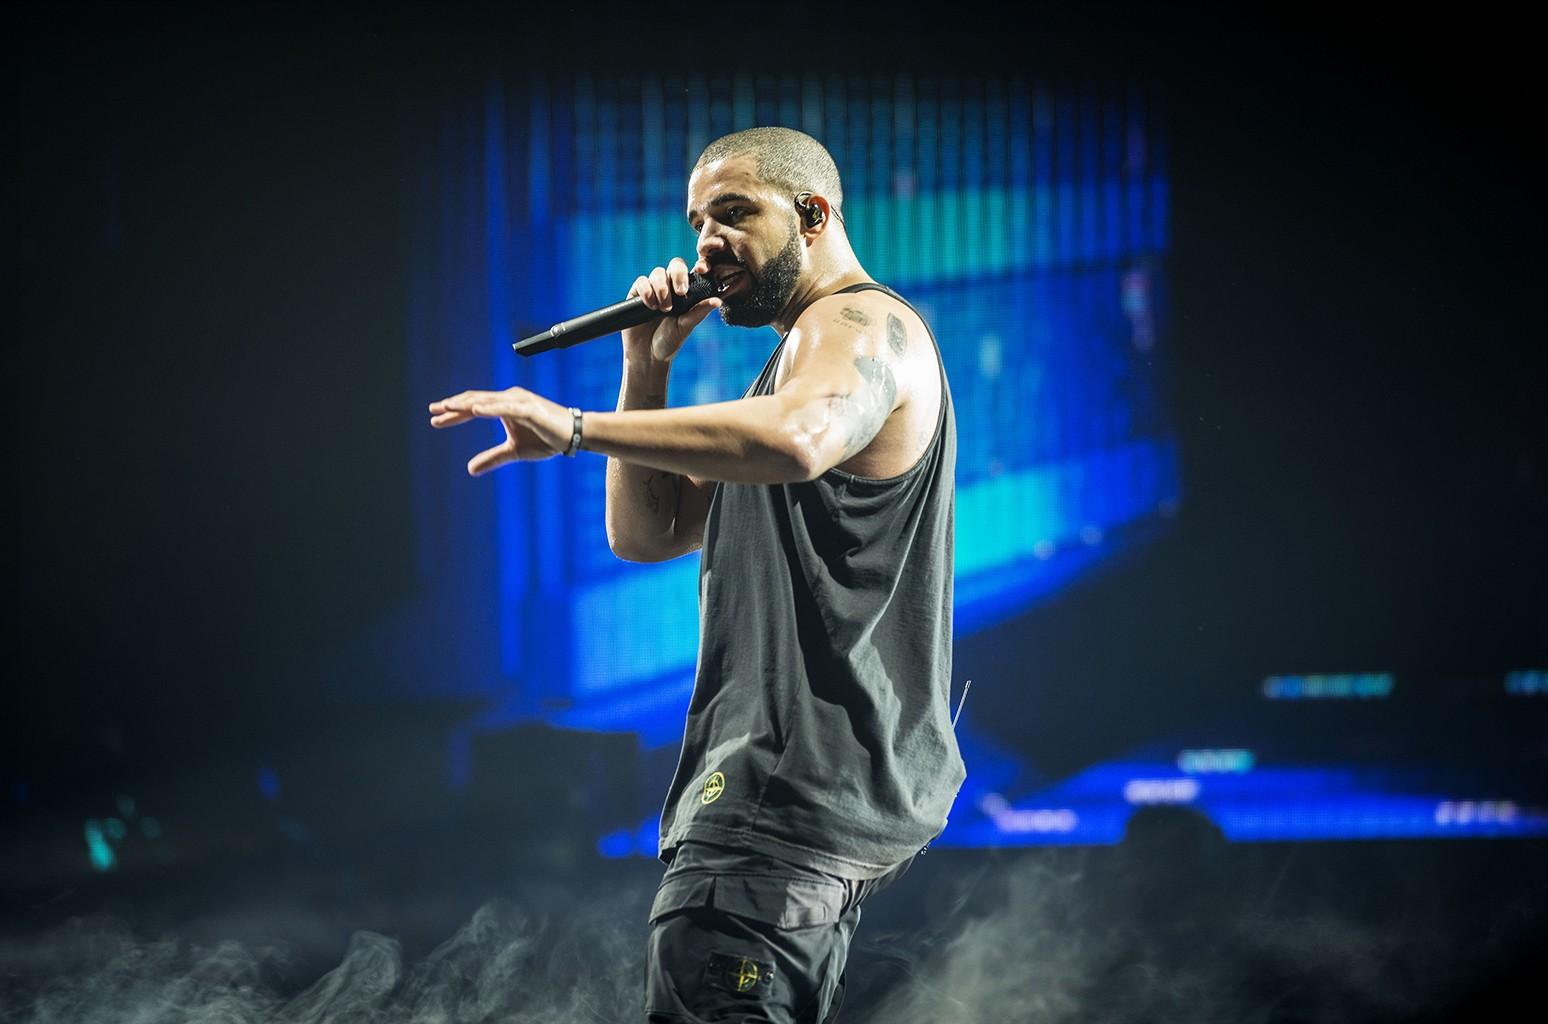 Drake performs at The SSE Hydro on March 23, 2017 in Glasgow, United Kingdom.